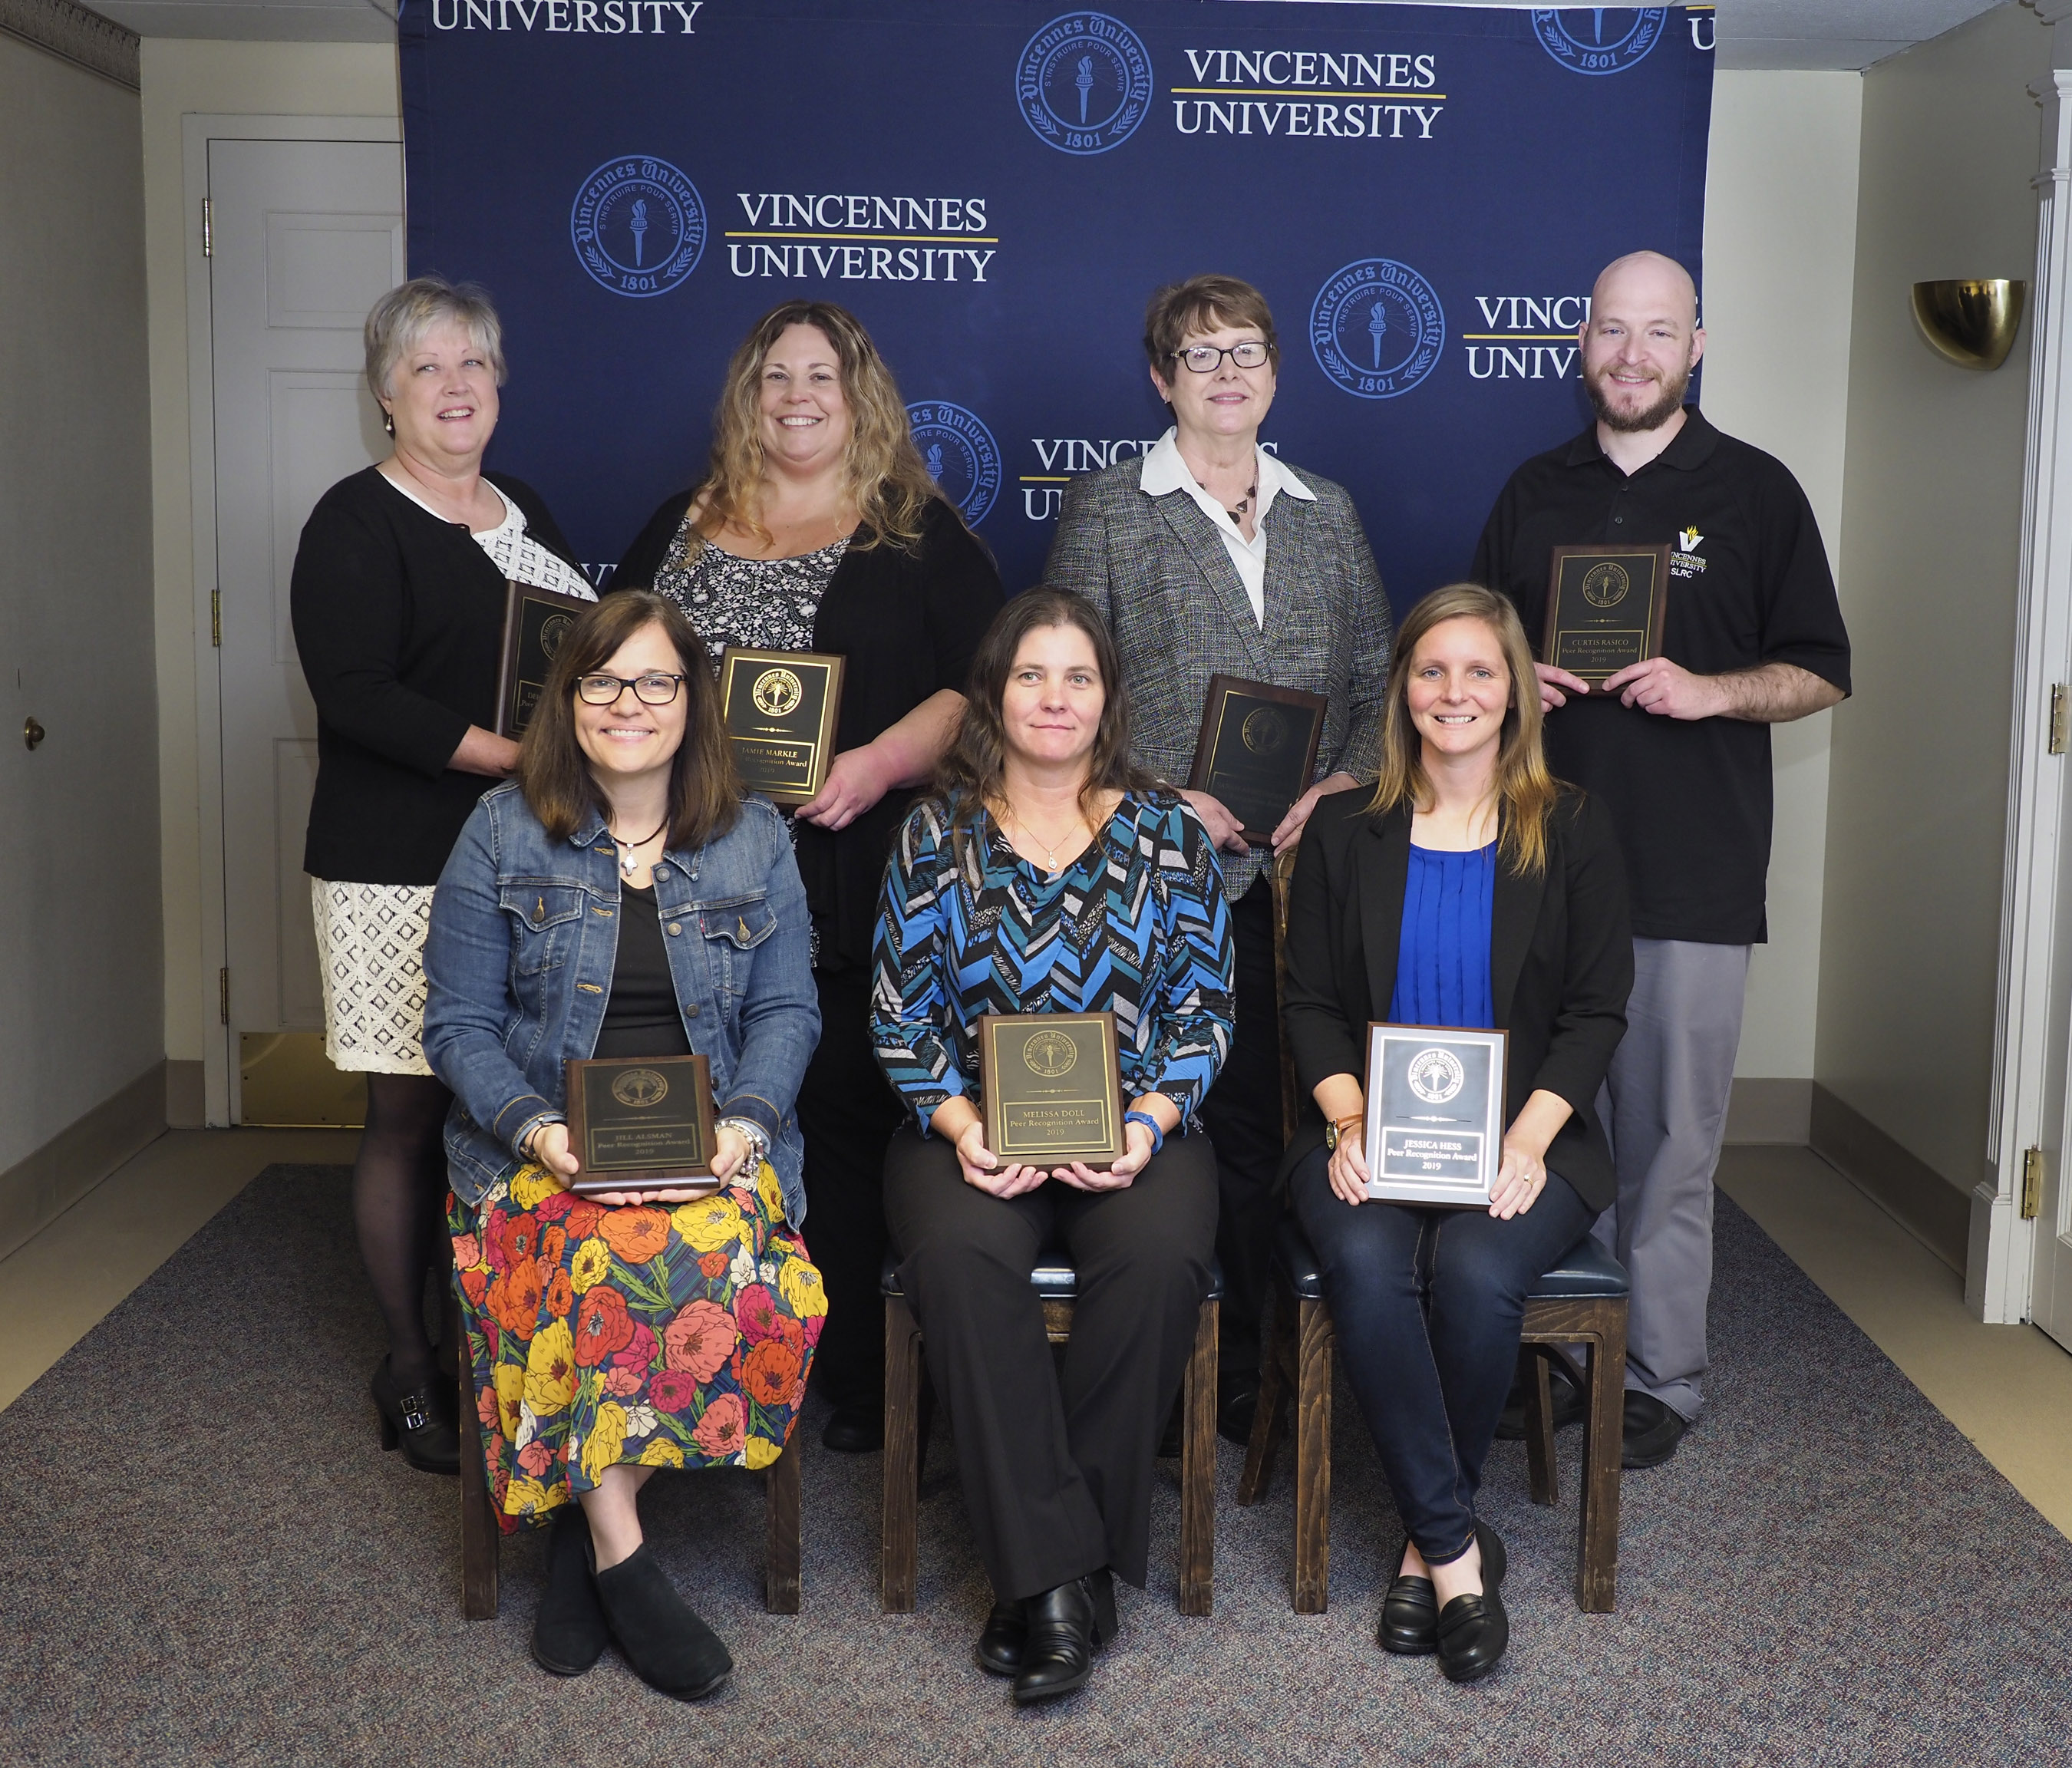 Vincennes University honors faculty and staff with Peer Recognition Awards